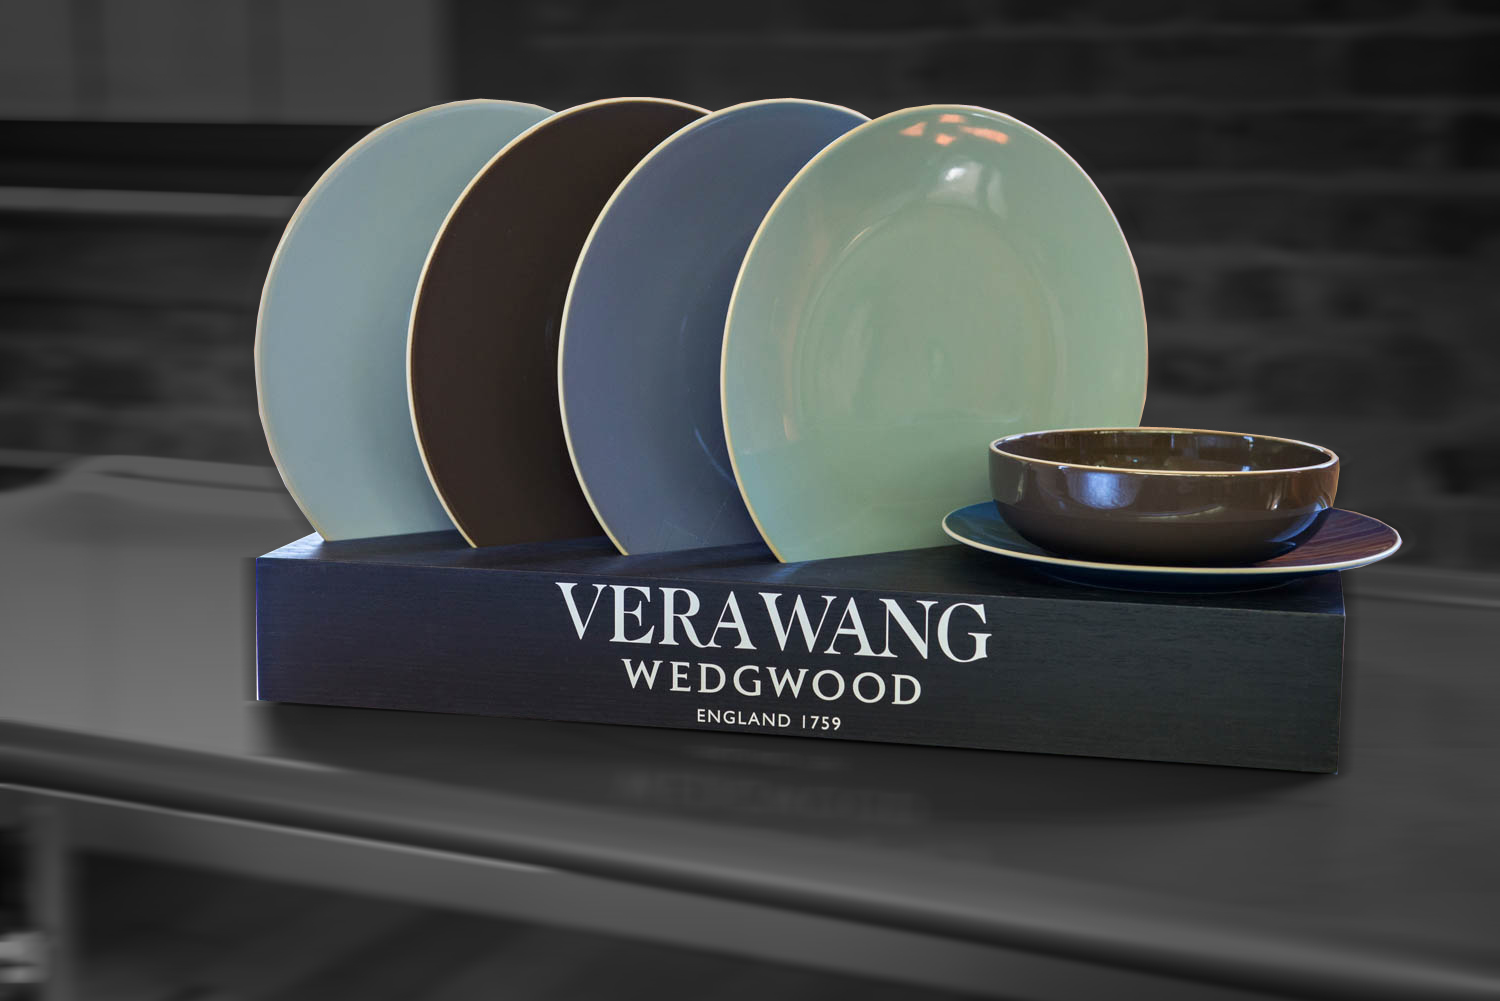 metaline-vera-wang-plate-point-of-purchase-display